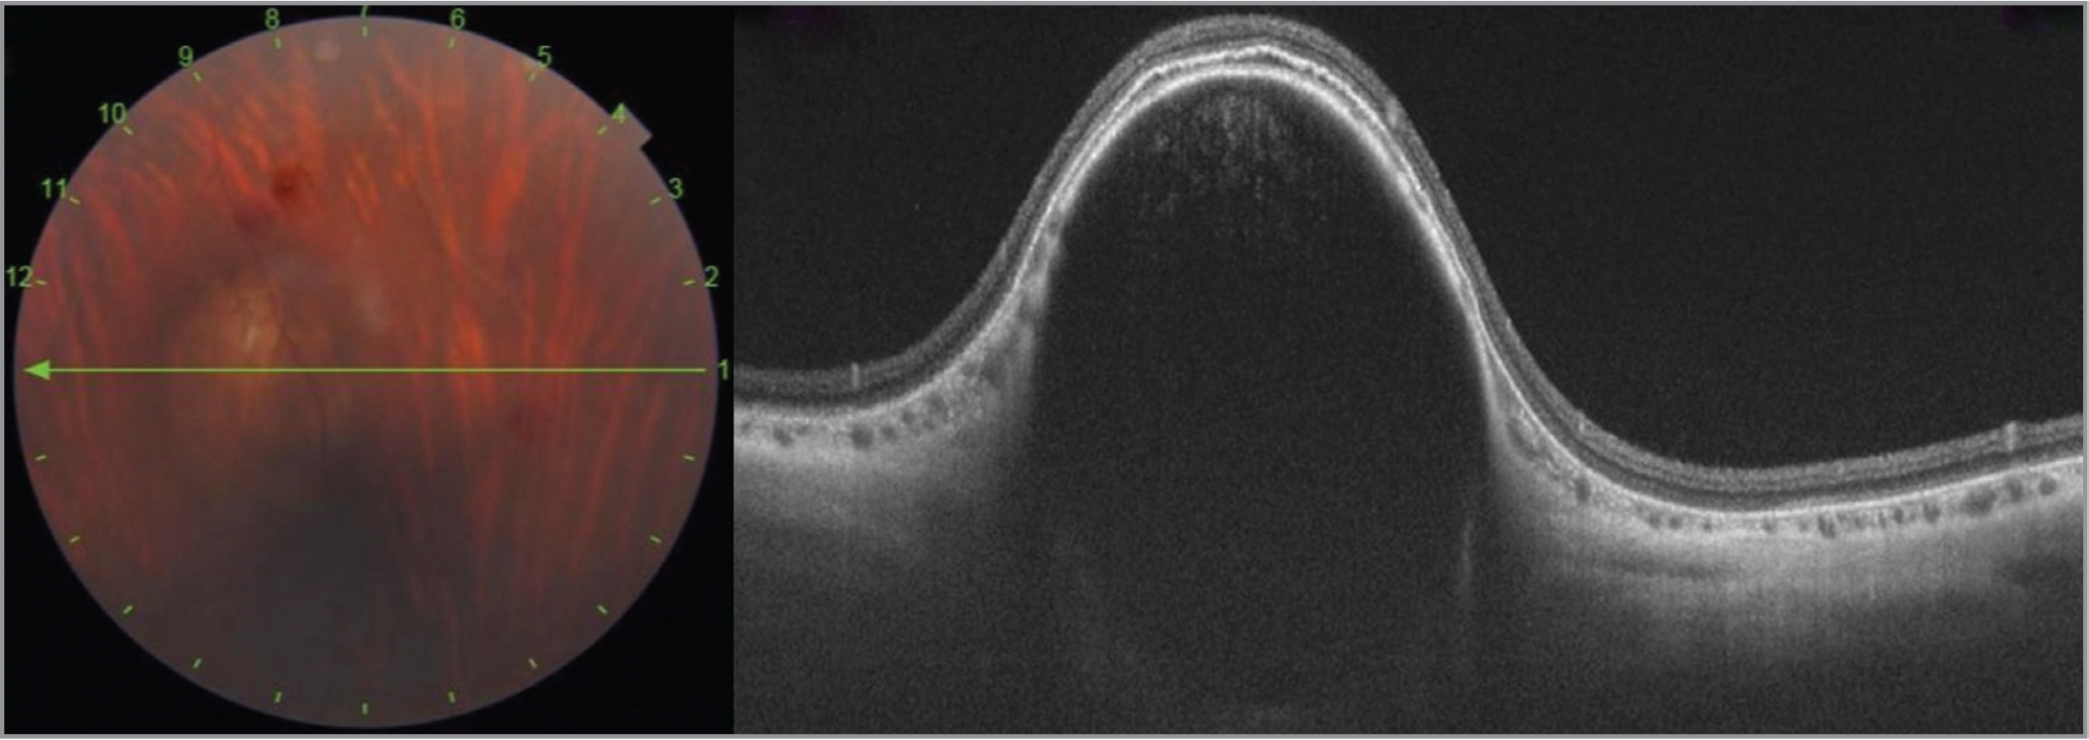 Swept-source optical coherence tomography imaging showing a well-defined scleral cyst with hyperreflective walls and internal hyporeflectivity, with smooth dome-shaped topography, elevating the choroid inward, compressing the choriocapillaries, with no subretinal fluid and intact photoreceptor layer.